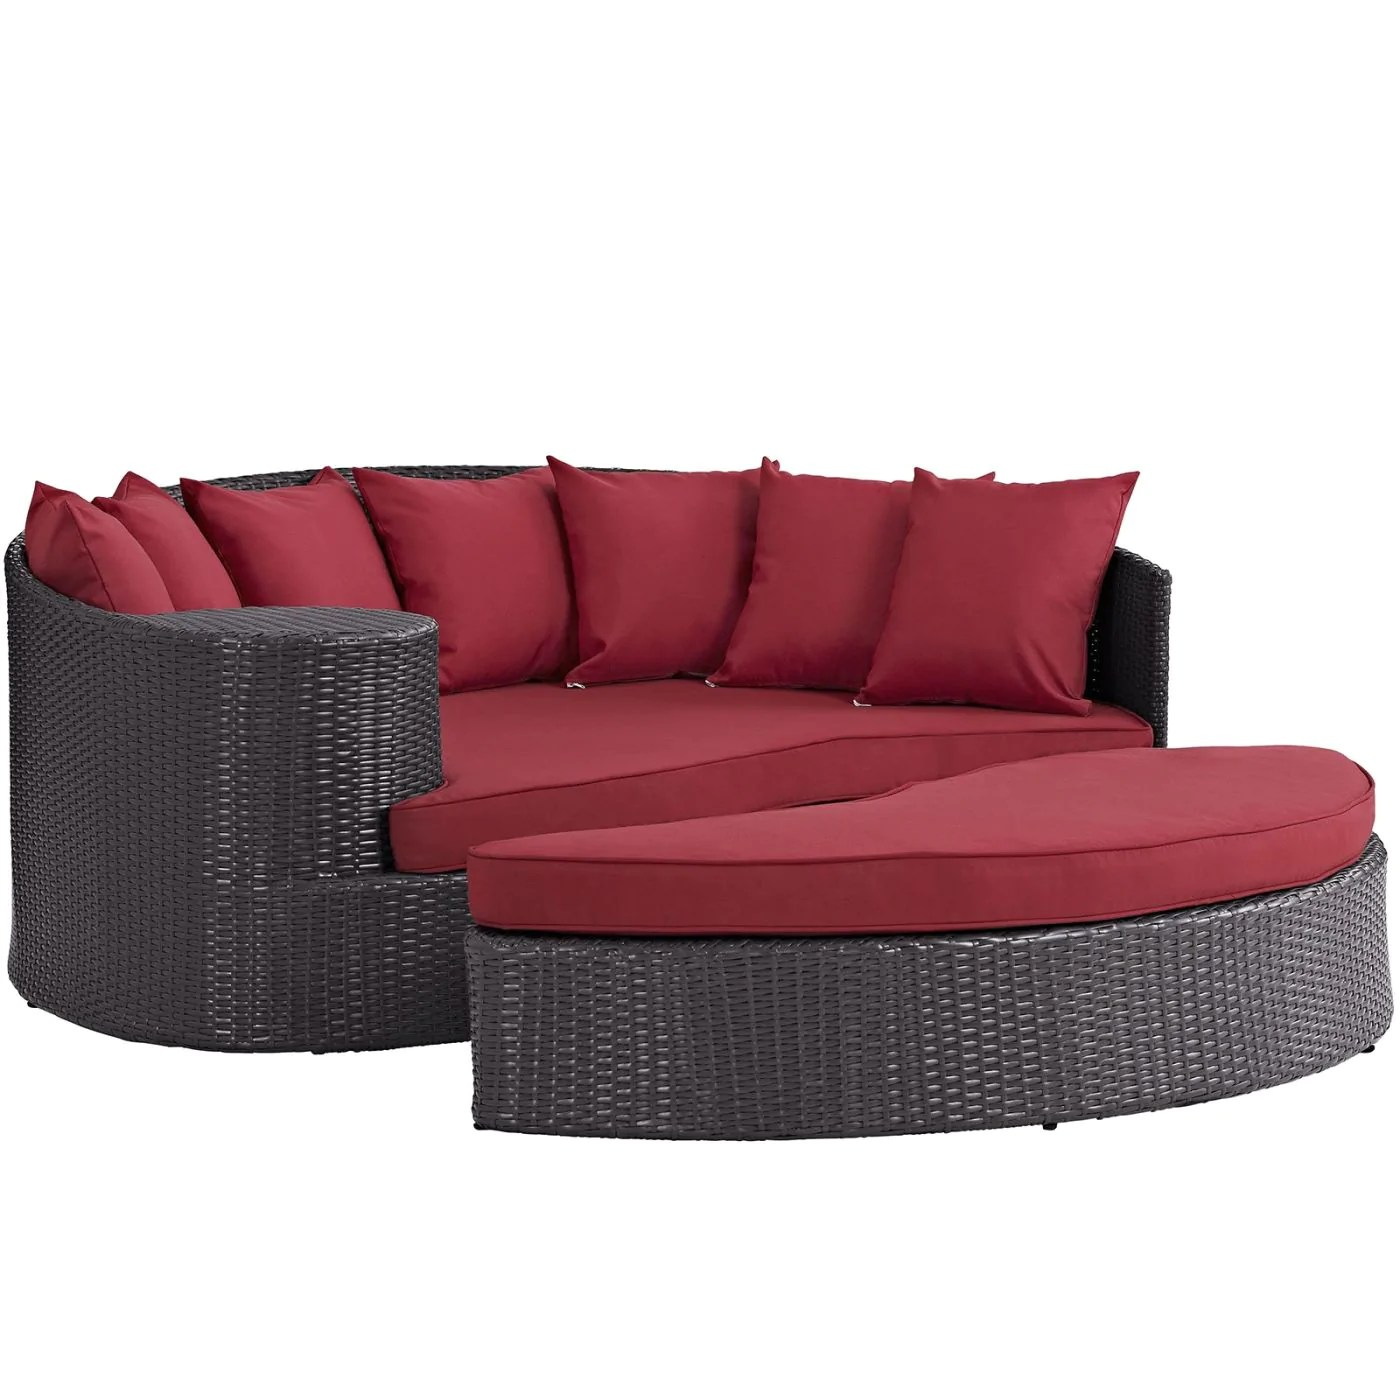 Outdoor Daybeds For Sale Modway Outdoor Daybeds On Sale Eei 645 Exp Red Taiji All